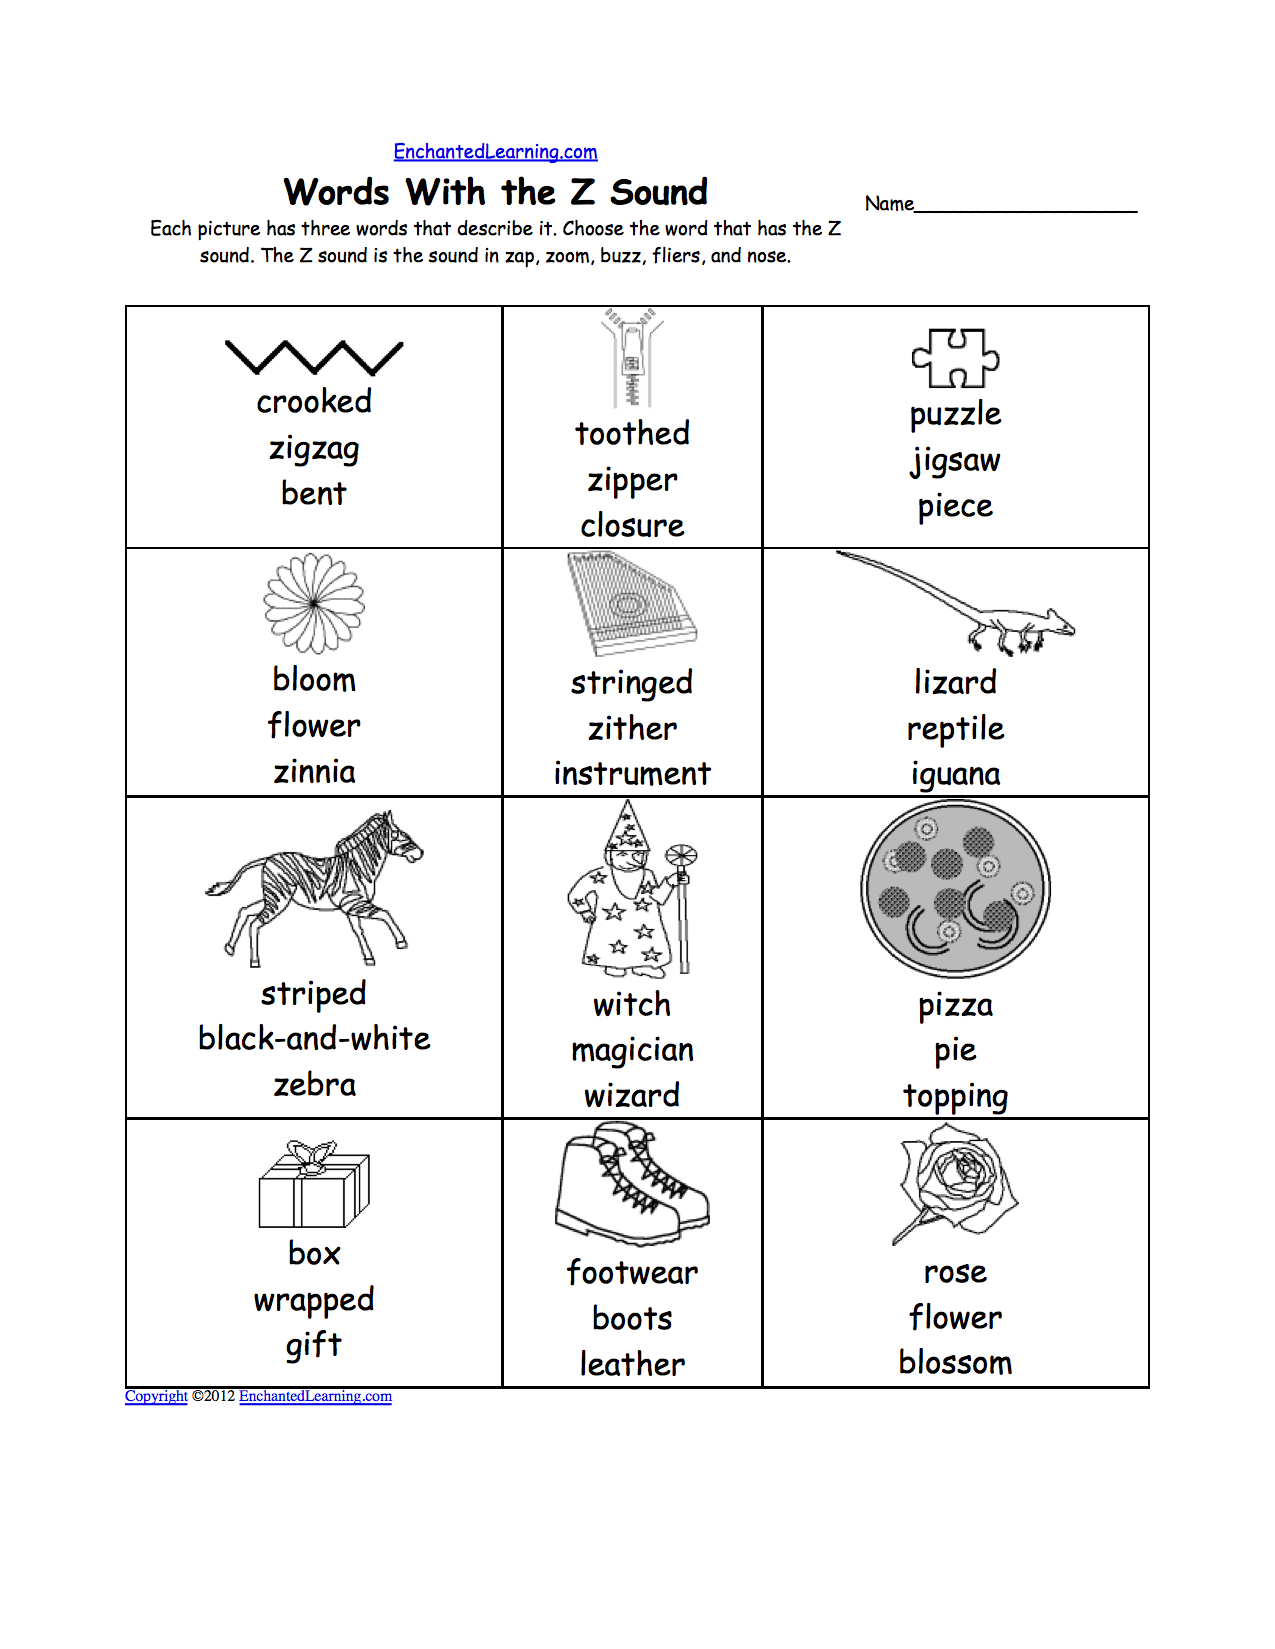 Weirdmailus  Stunning Phonics Worksheets Multiple Choice Worksheets To Print  With Fair Phonics Worksheets Multiple Choice Worksheets To Print  Enchantedlearningcom With Amusing Flower Dissection Worksheet Also Osmosis Diffusion Worksheet In Addition Math Worksheet Addition And Worksheets For Th Grade Math As Well As Axis Of Symmetry Worksheet Additionally Th Step Inventory Worksheets From Enchantedlearningcom With Weirdmailus  Fair Phonics Worksheets Multiple Choice Worksheets To Print  With Amusing Phonics Worksheets Multiple Choice Worksheets To Print  Enchantedlearningcom And Stunning Flower Dissection Worksheet Also Osmosis Diffusion Worksheet In Addition Math Worksheet Addition From Enchantedlearningcom